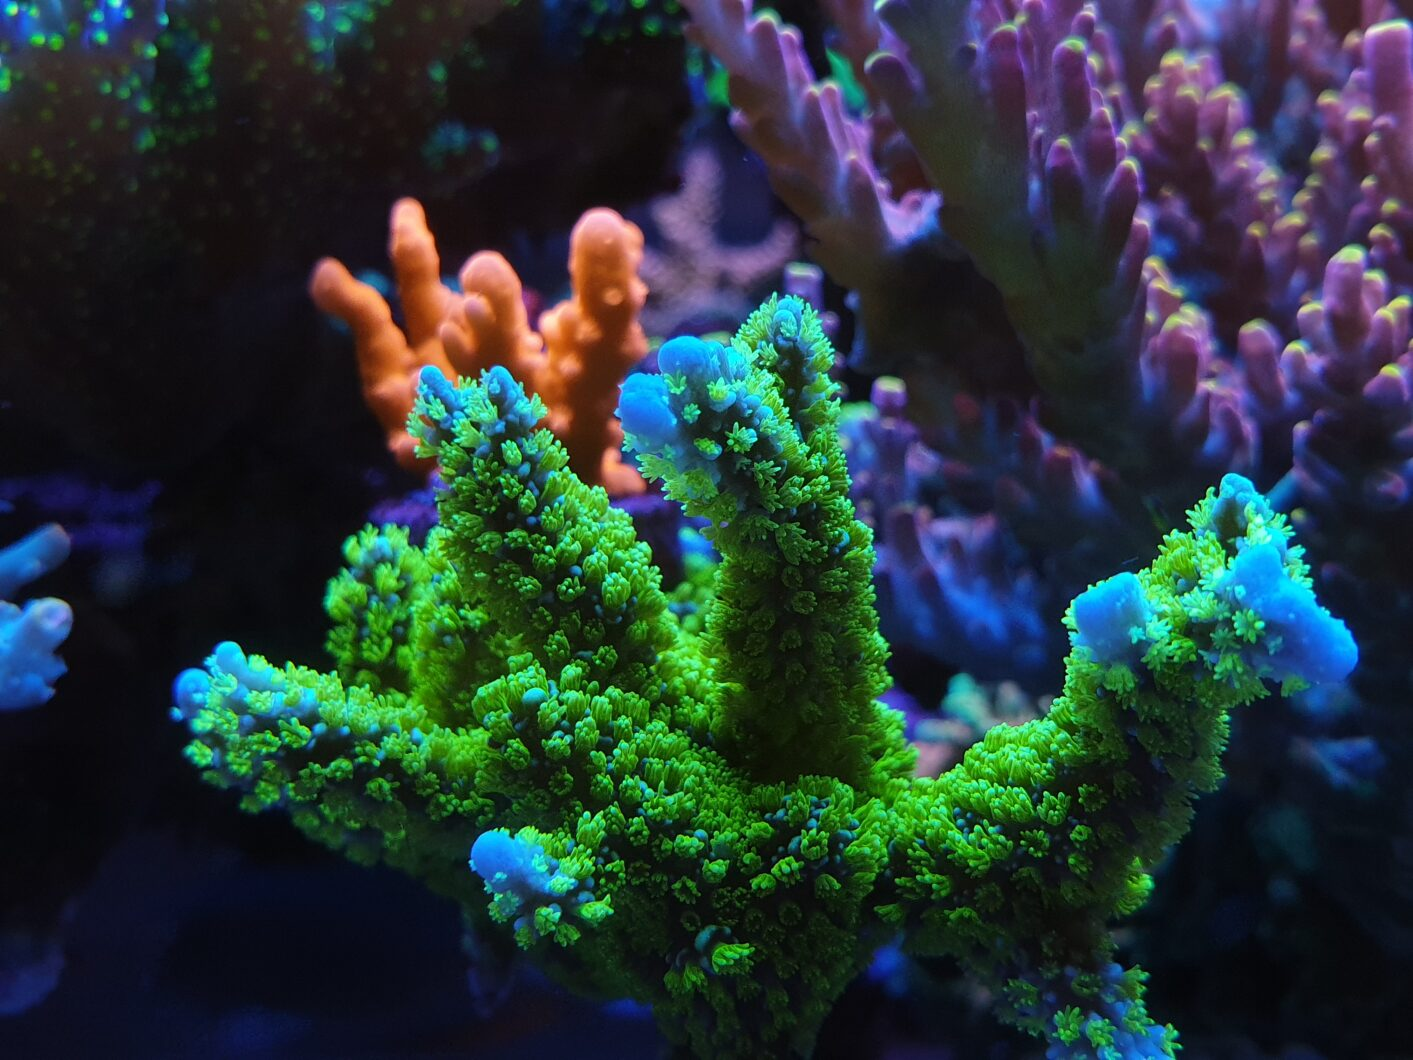 Check out this growing tips close-up!